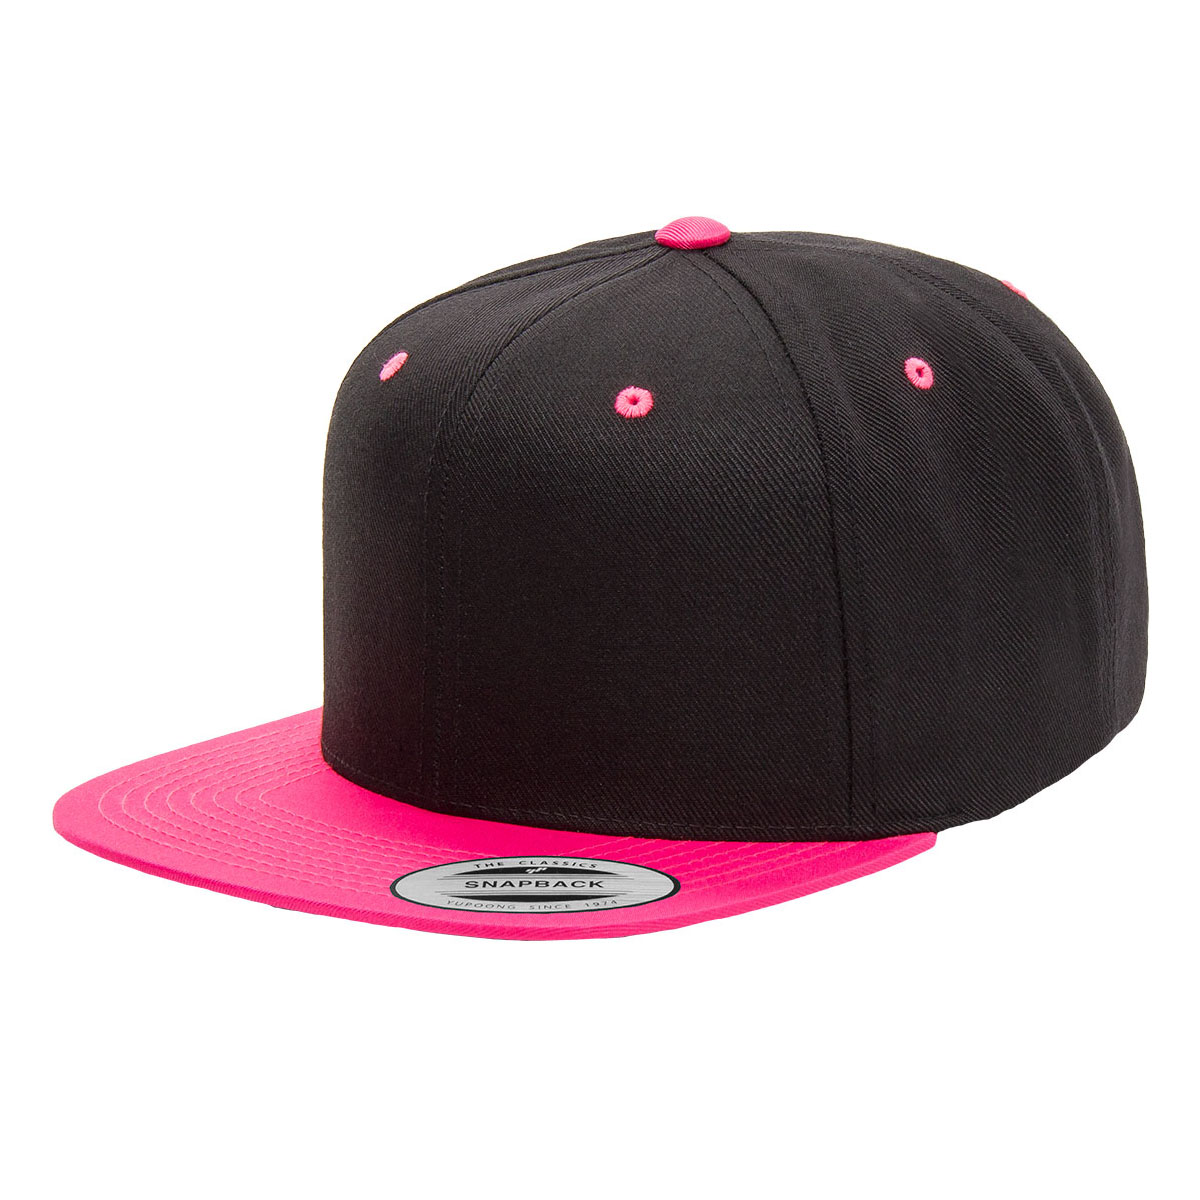 Black Neon Pink Snapback Embroidered – Whats A Name Embroidery 12062512e89